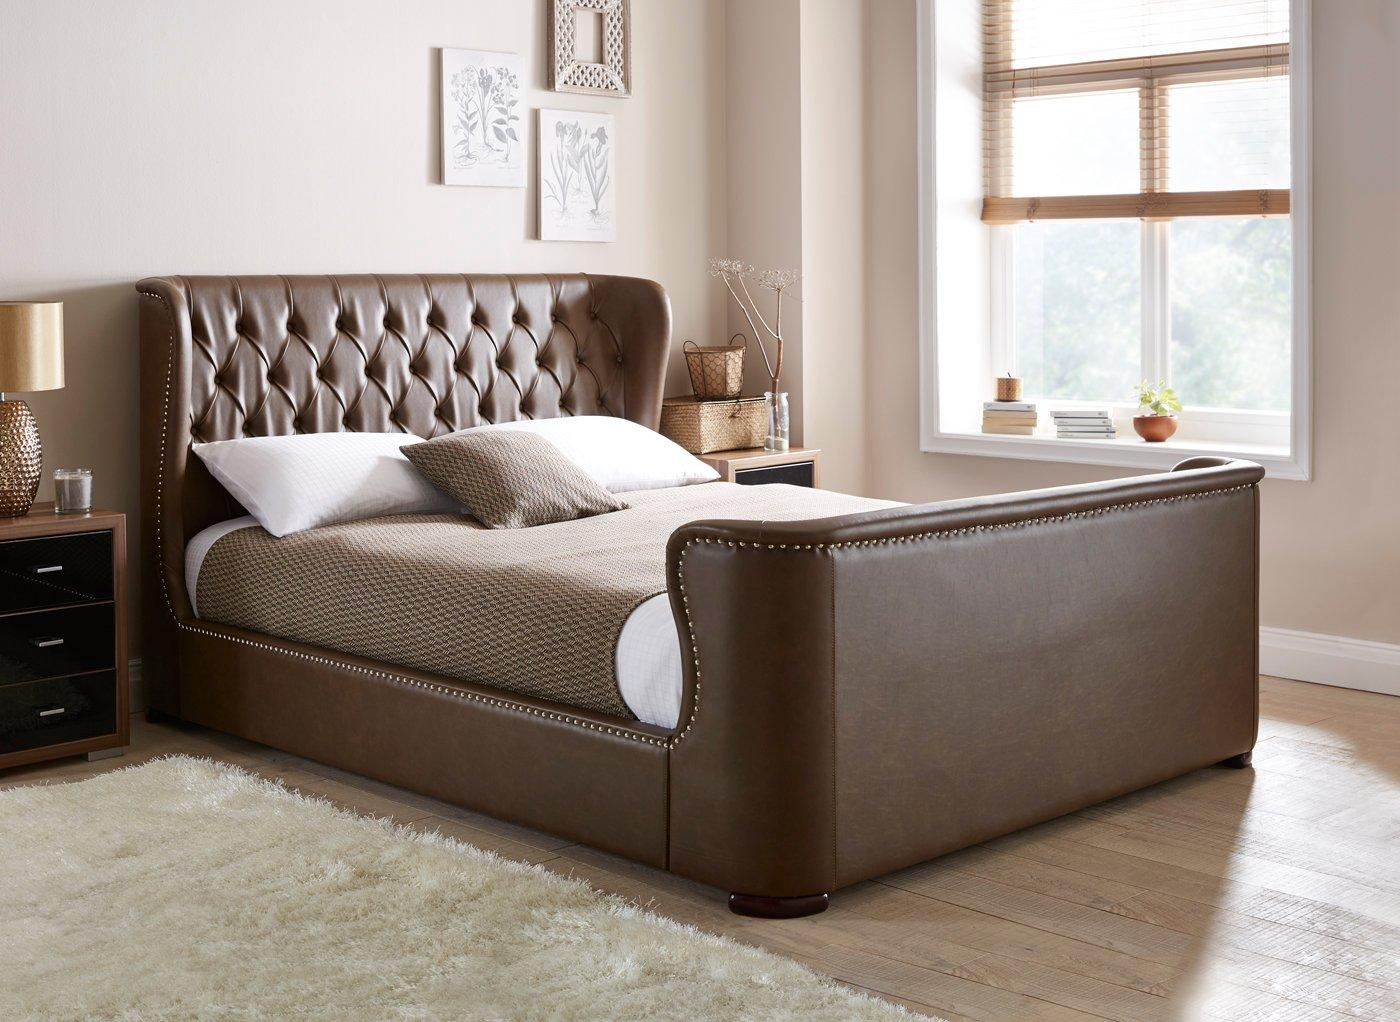 Leather Bed Brussels Upholstered Bed Frame Bonded Leather Beds Beds